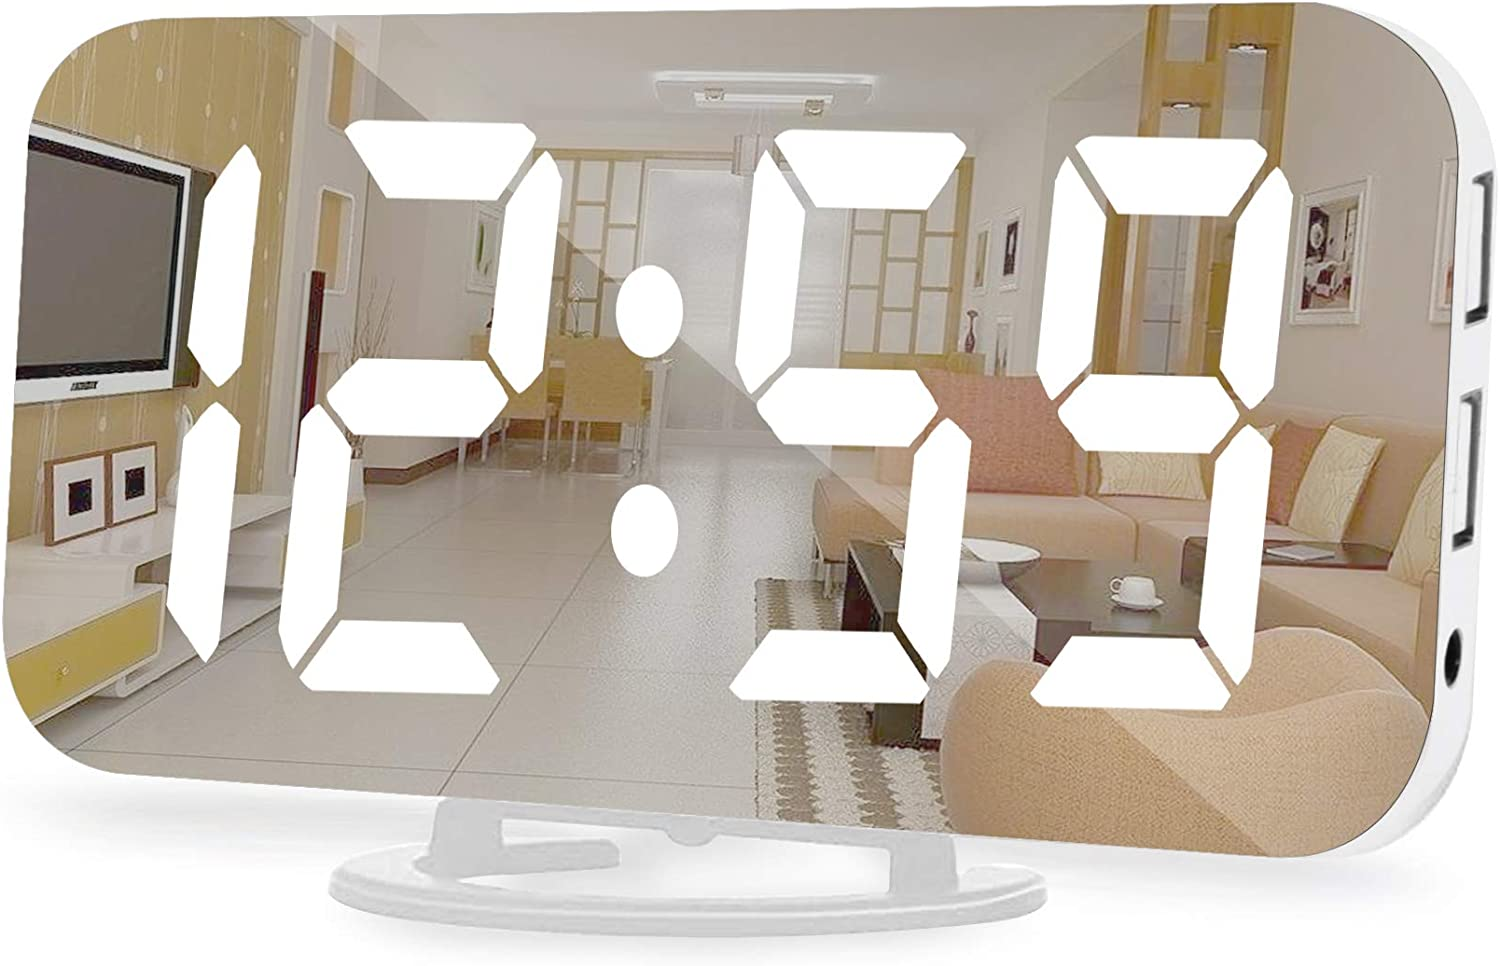 Digital Alarm Clock,6.5 Inch Large Display LED Mirror Electronic Clocks, with Snooze,12/24H,Dual USB Charging Ports, 3 Adjustable Brightness Suitable for Bedroom Home Office -White